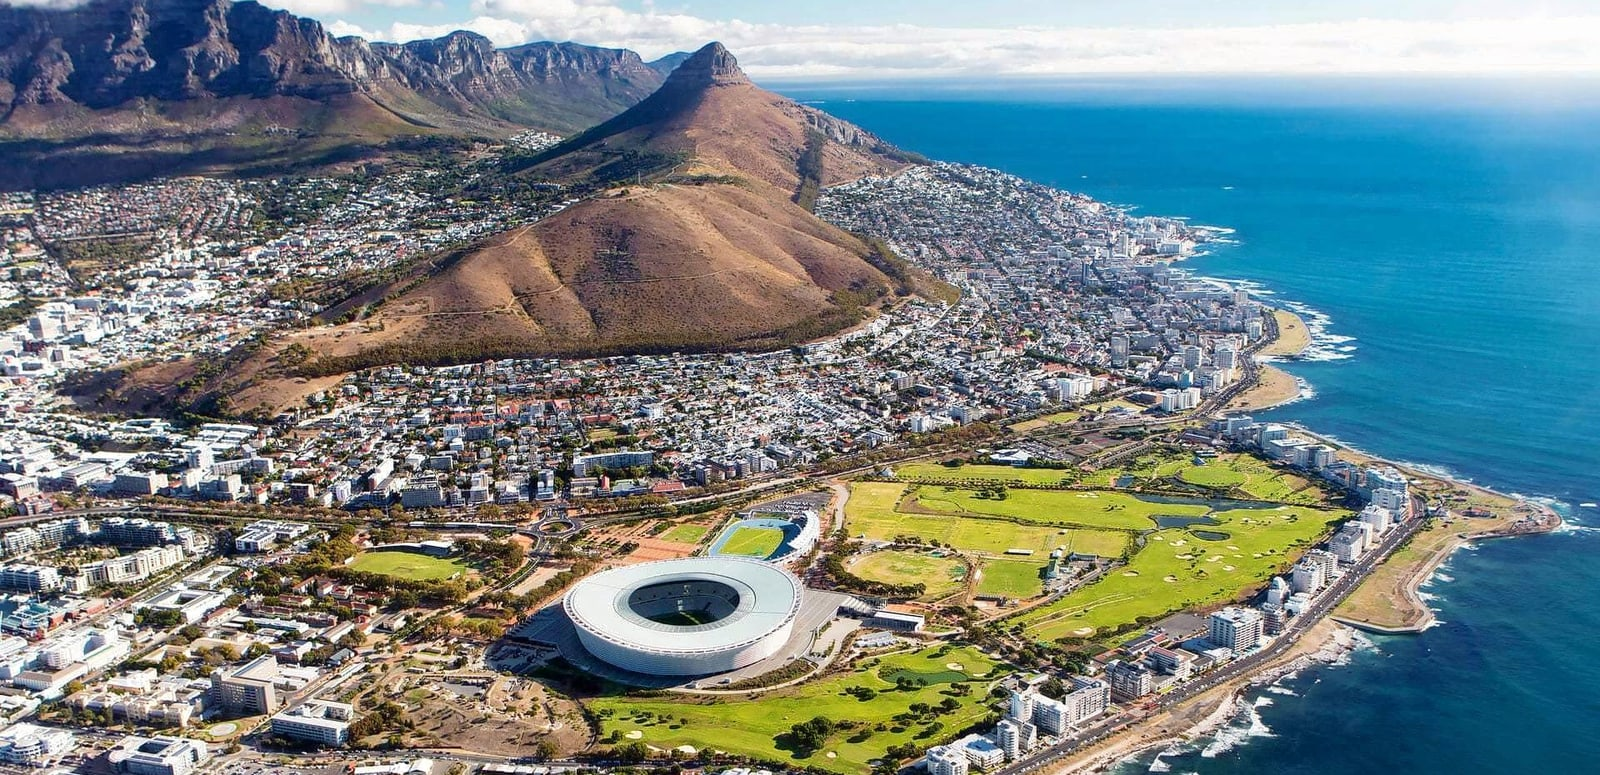 1573724794_cape-town-aerial-view-greenpoint-stadium.jpg